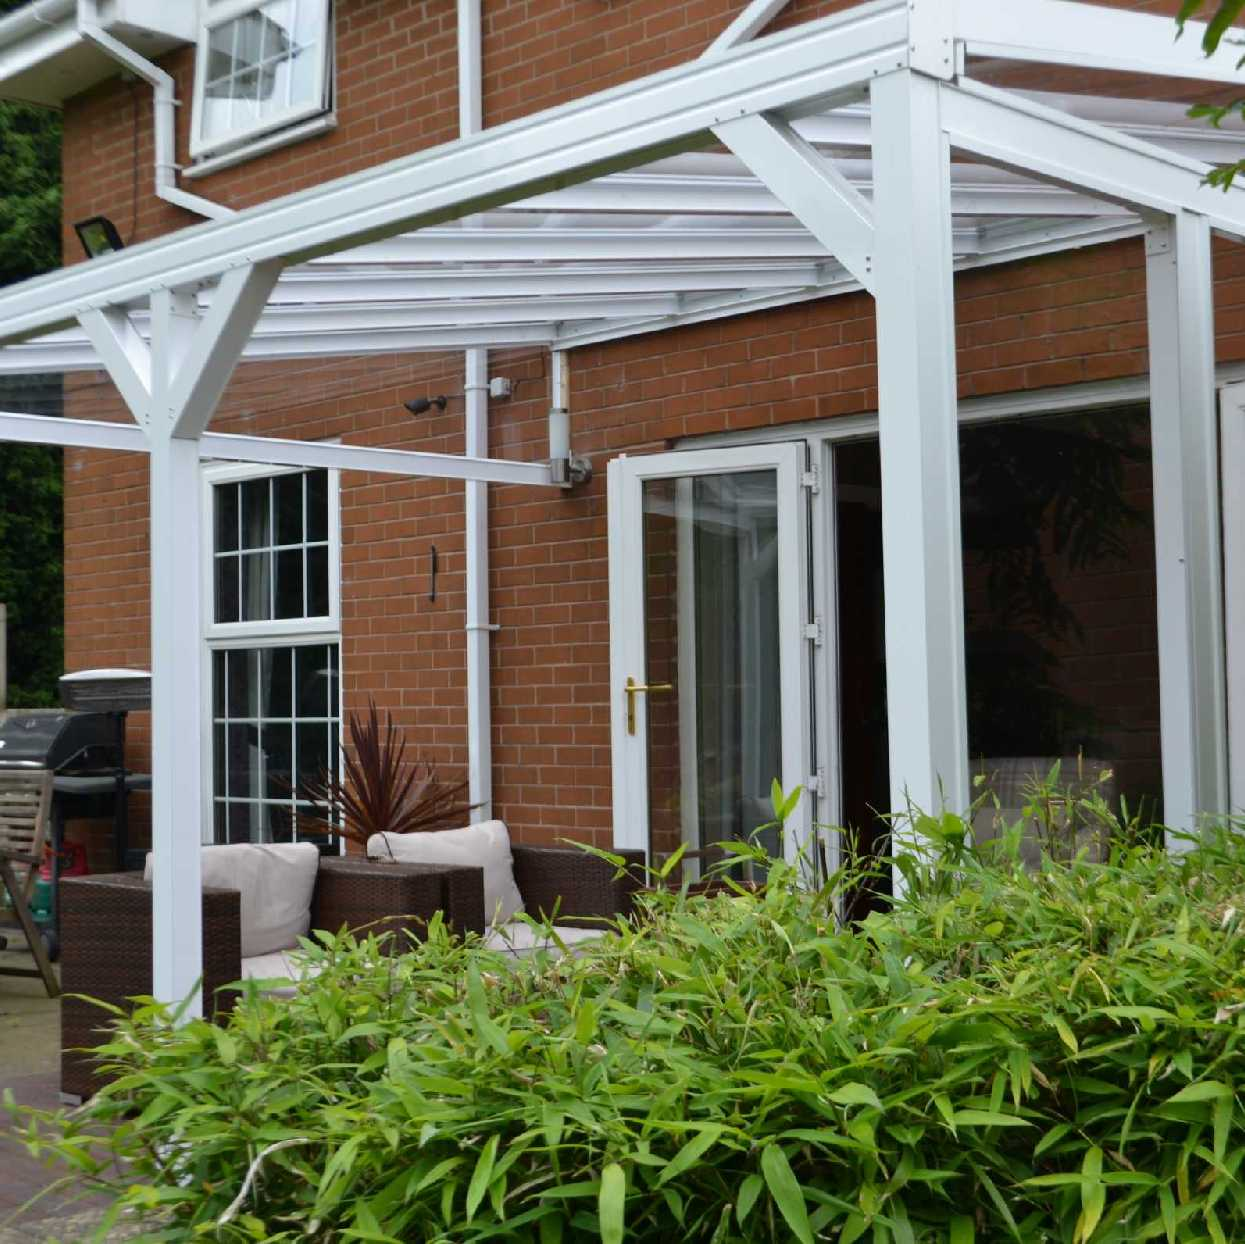 Omega Smart White Lean-To Canopy UNGLAZED for 6mm Glazing - 8.4m (W) x 1.5m (P), (4) Supporting Posts from Omega Build